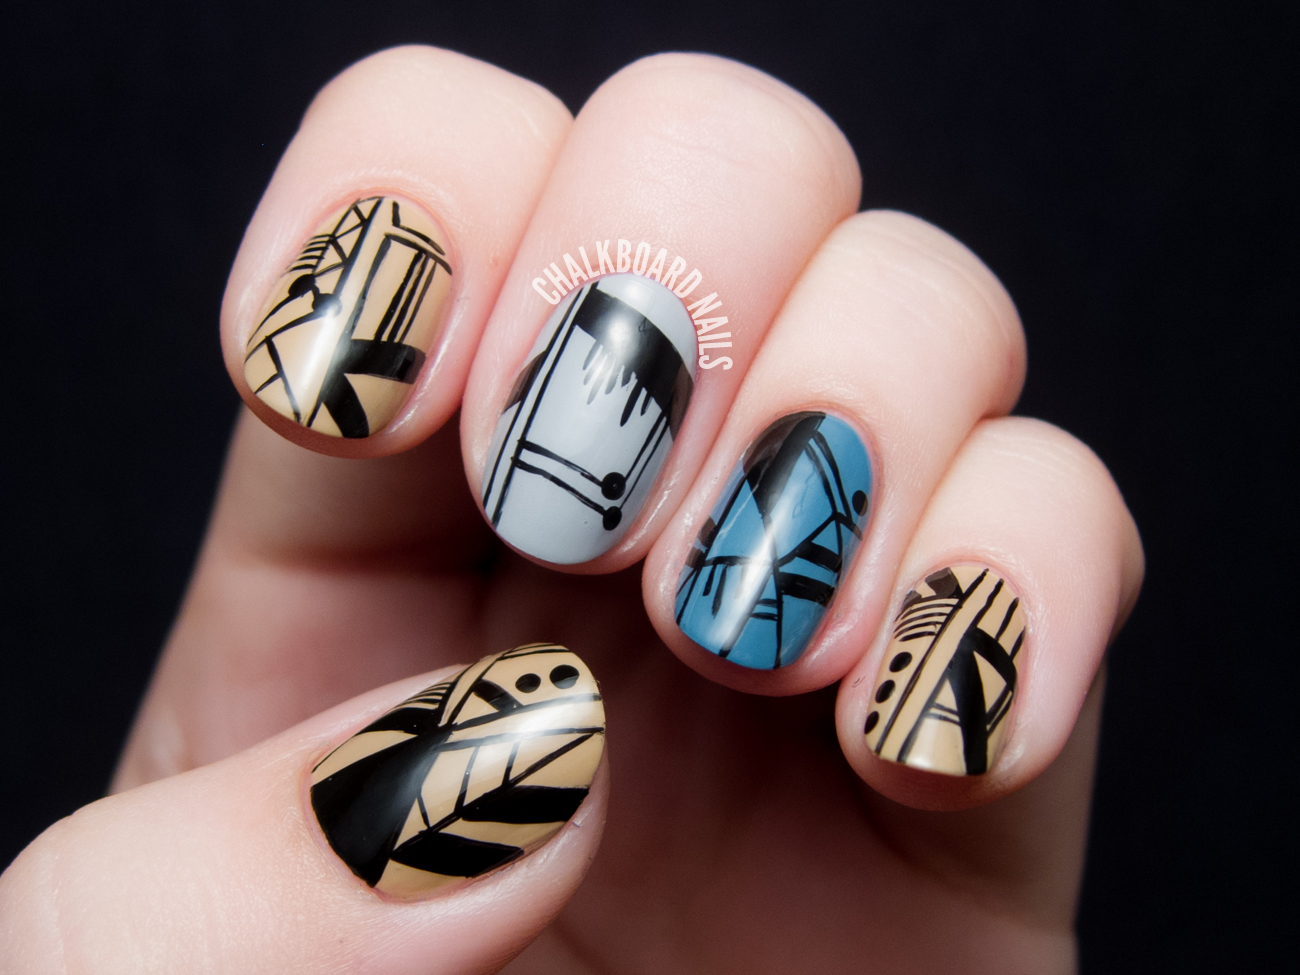 Line Art On Nails : Spifster inspired delicate line nail art chalkboard